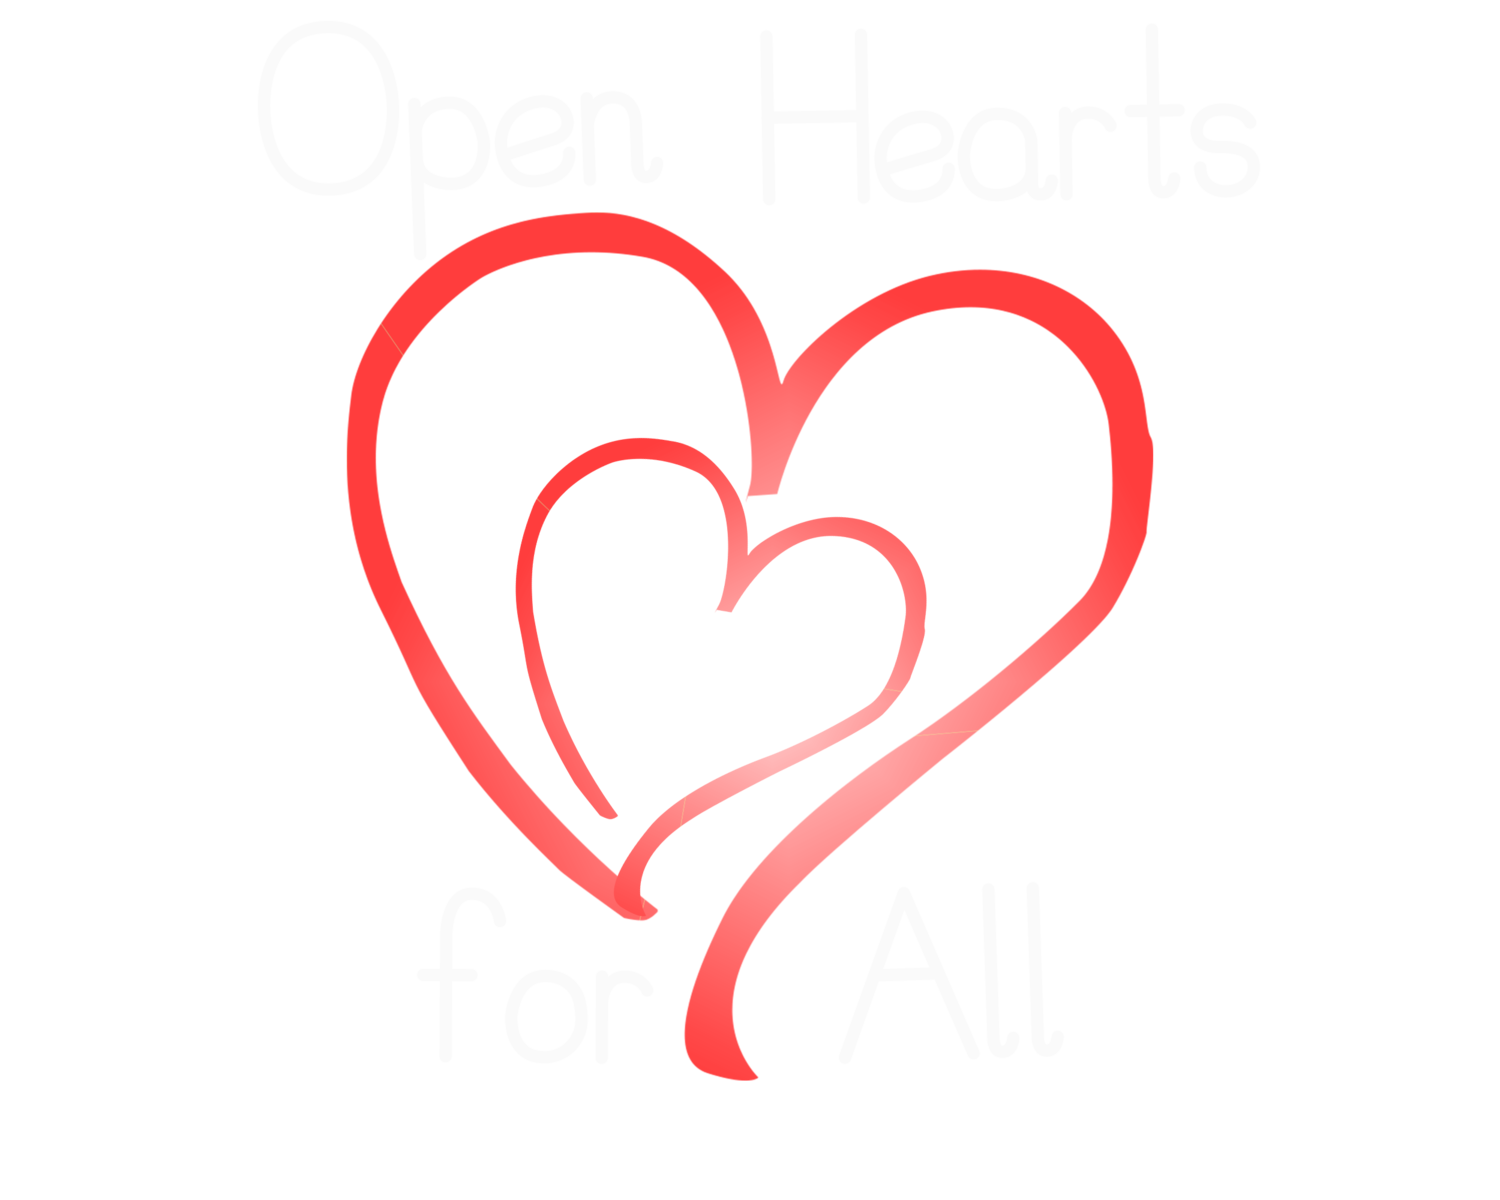 Open Hearts for All